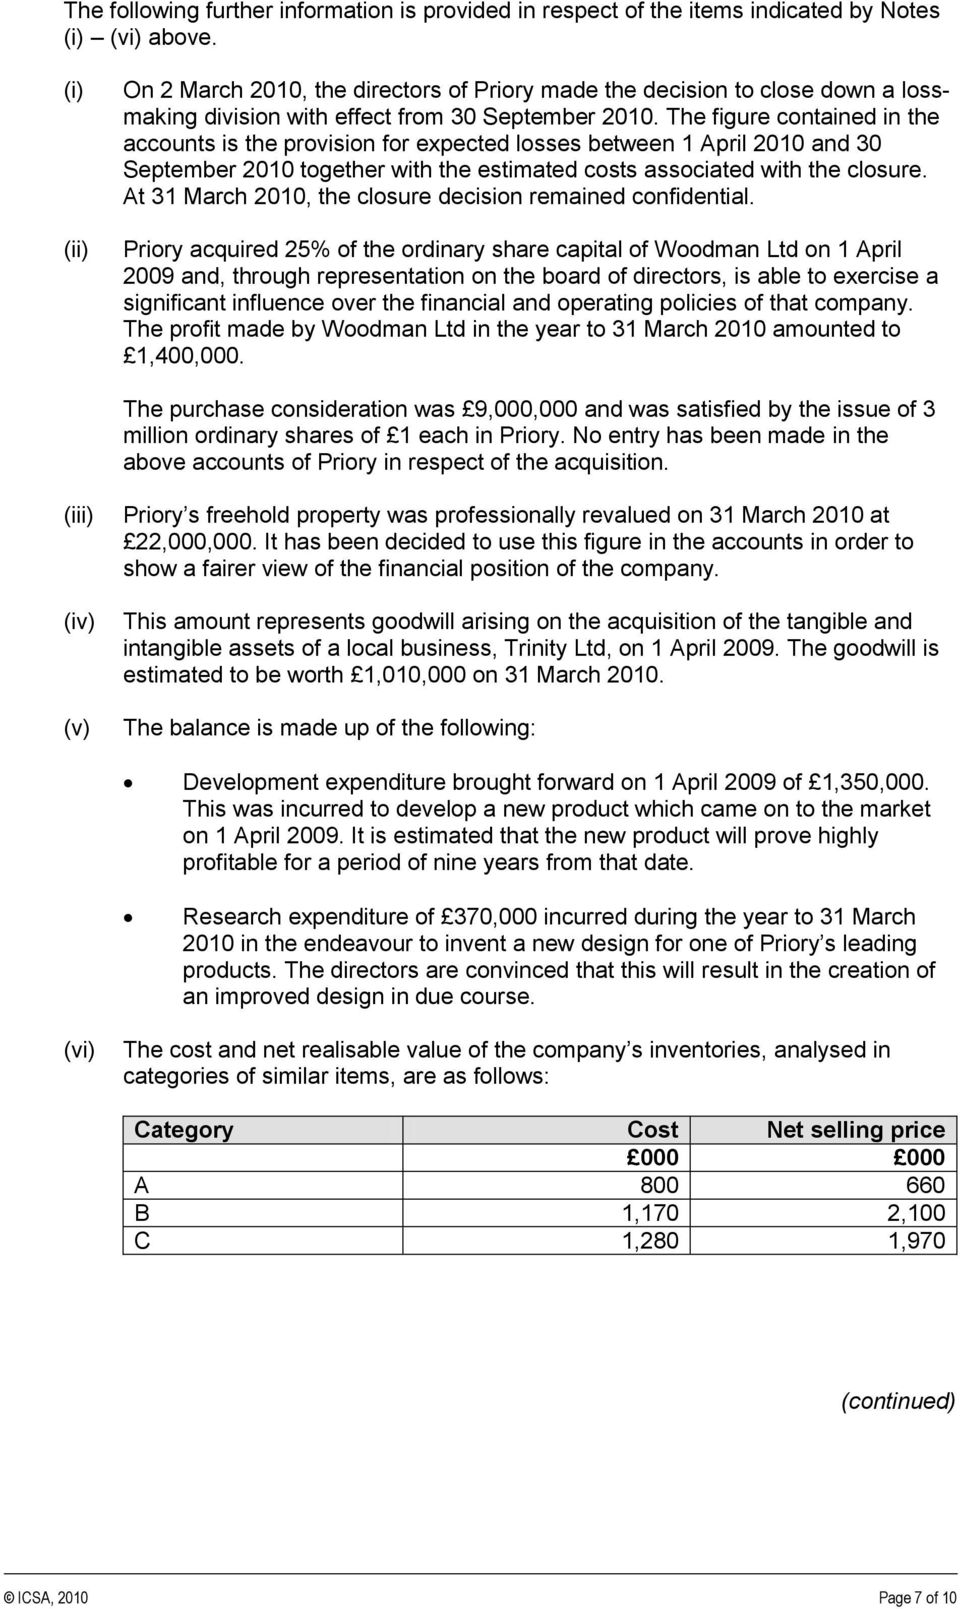 The figure contained in the accounts is the provision for expected losses between 1 April 2010 and 30 September 2010 together with the estimated costs associated with the closure.